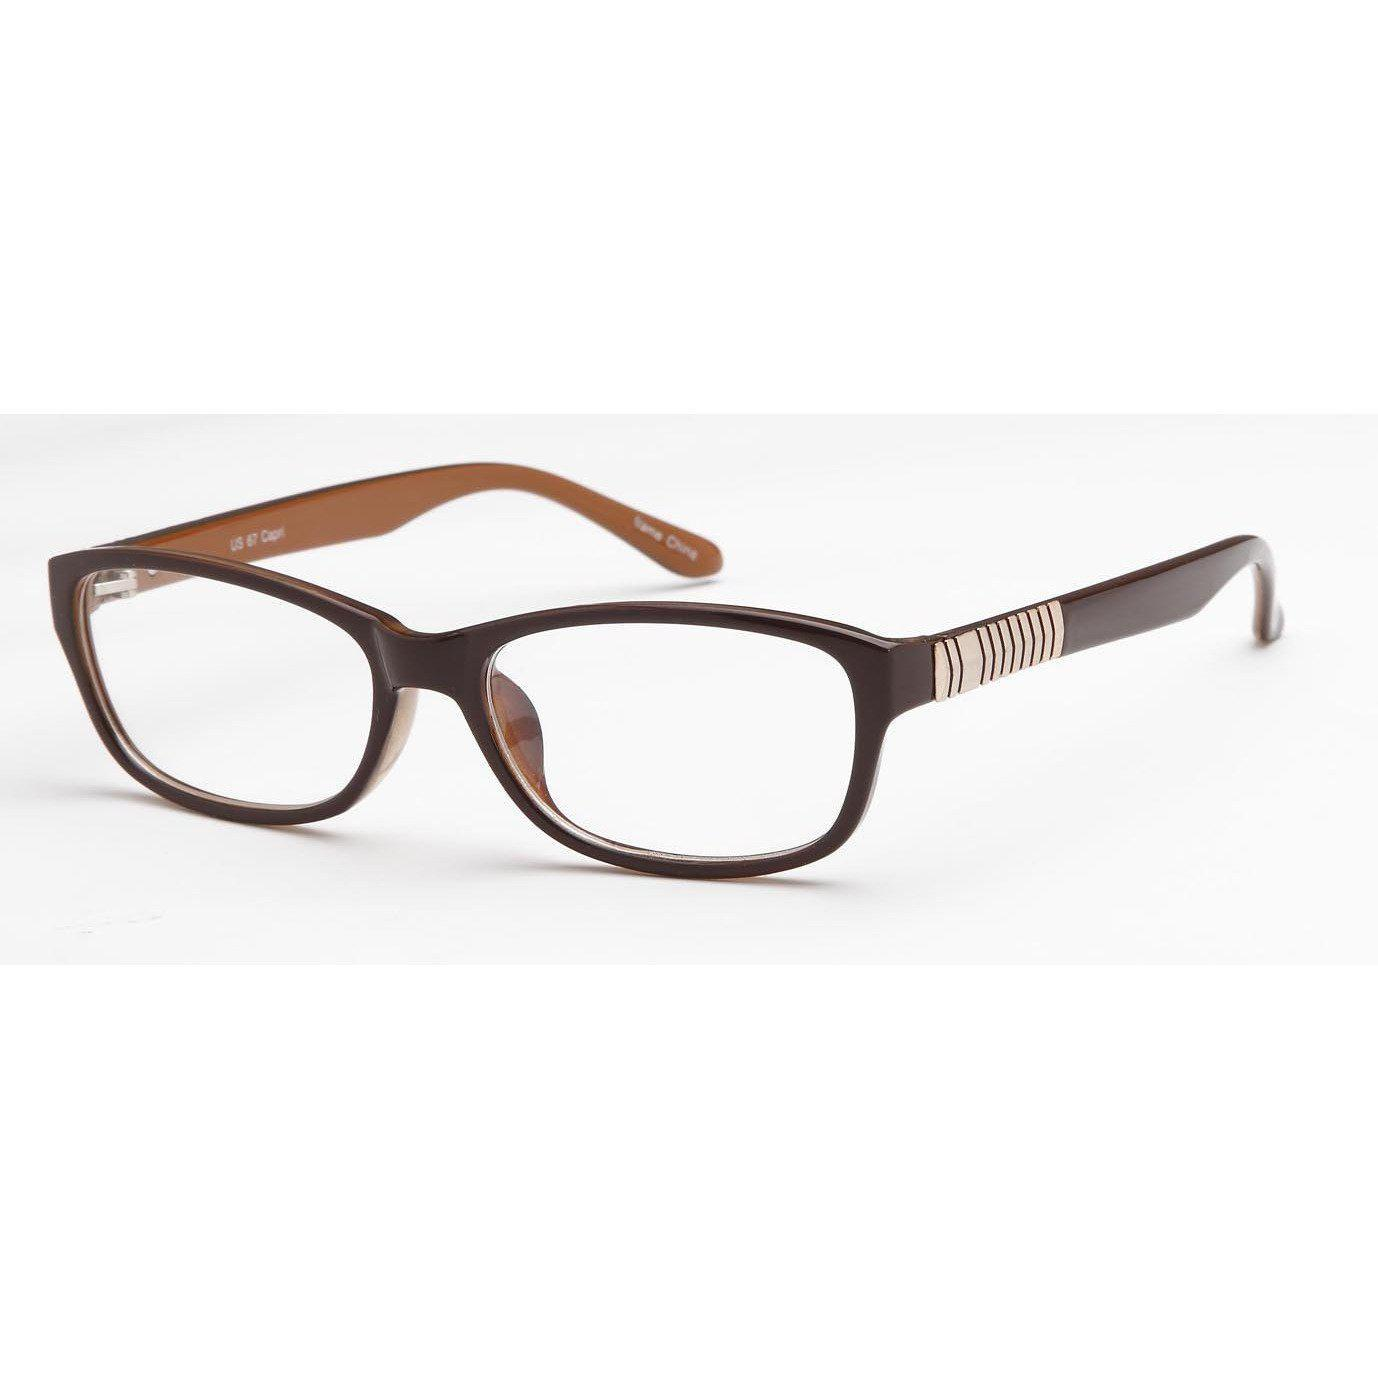 4U Prescription Glasses US 67 Optical Eyeglasses Frame - timetoshade